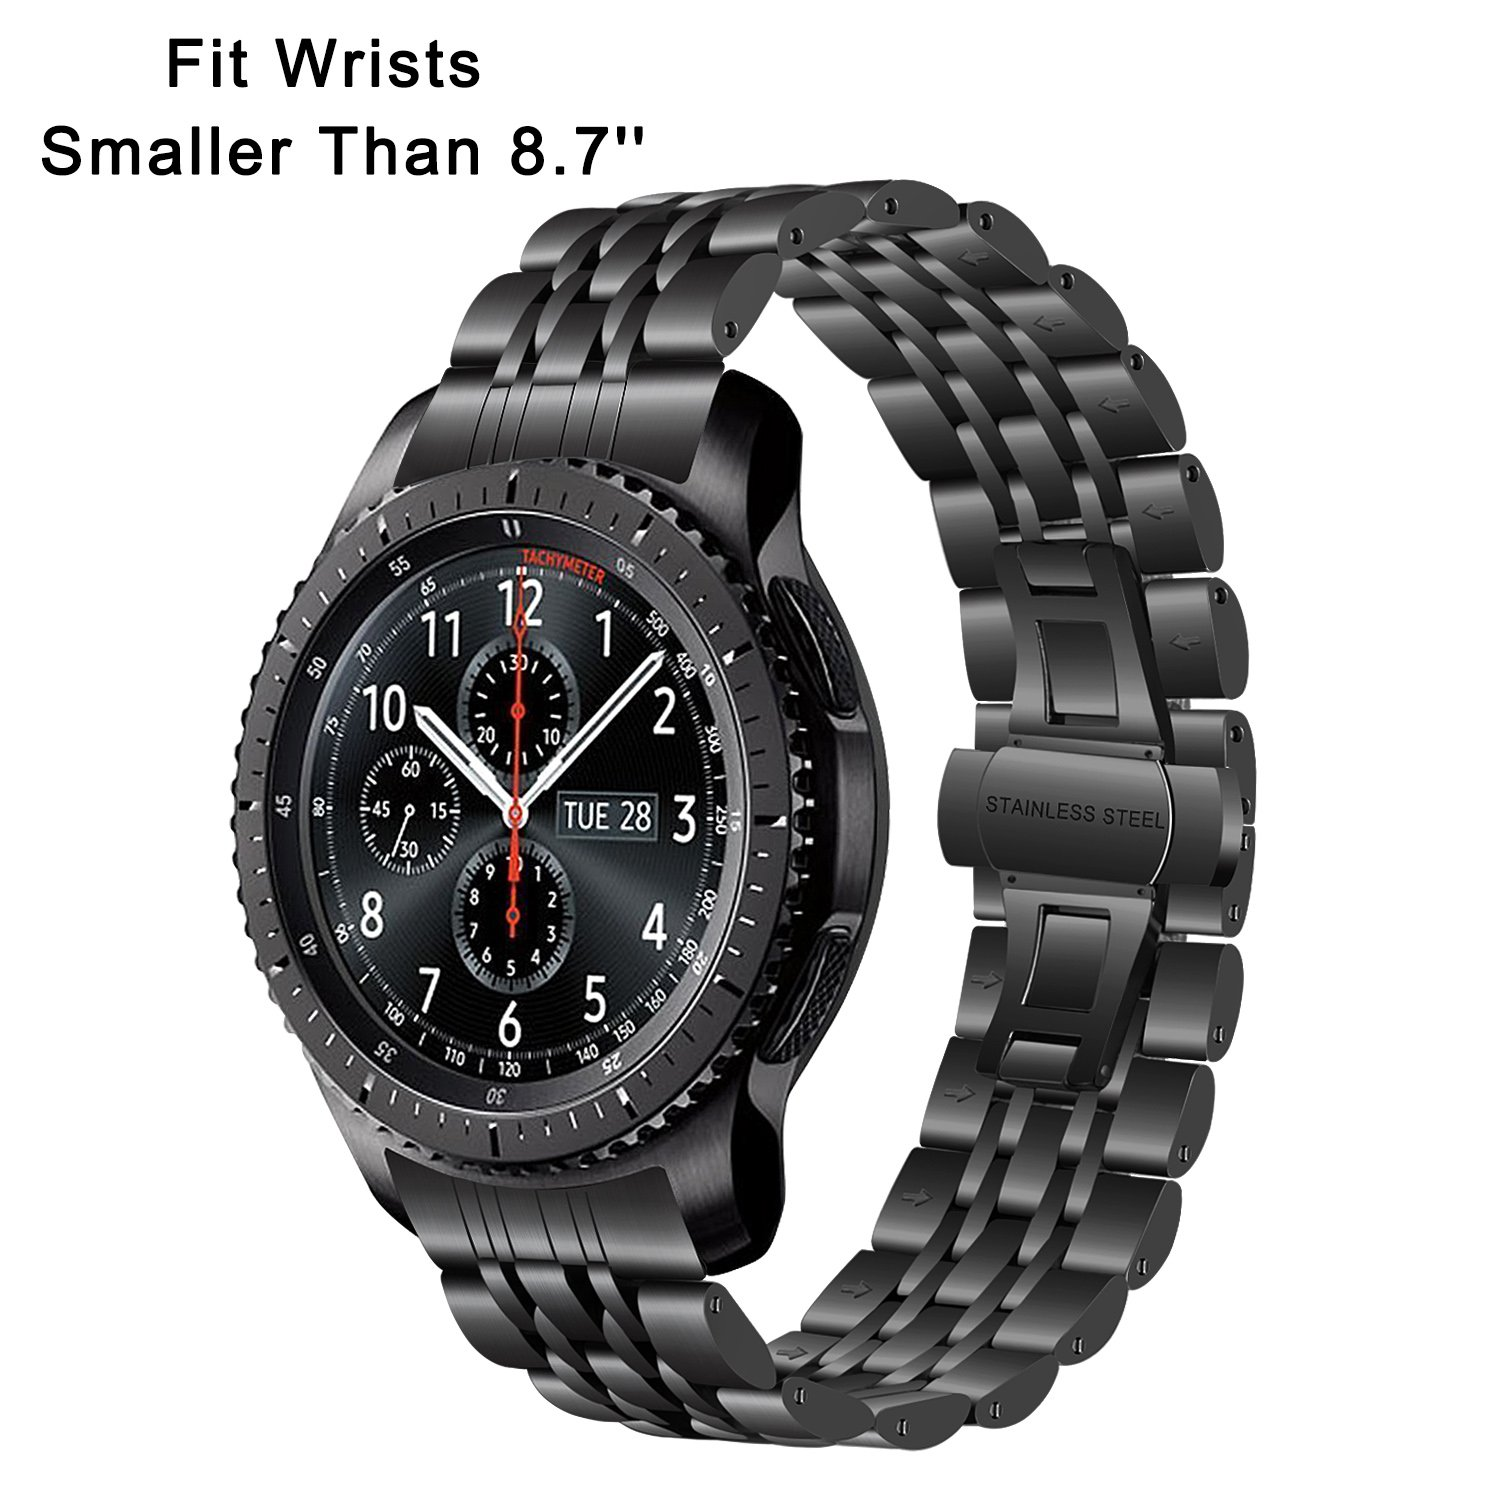 for Gear S3 / Galaxy Watch 46mm Watchband, TRUMiRR 22mm Stainless Steel Watch Band Curved End Strap Butterfly Buckle Bracelet for Samsung Gear S3 ...